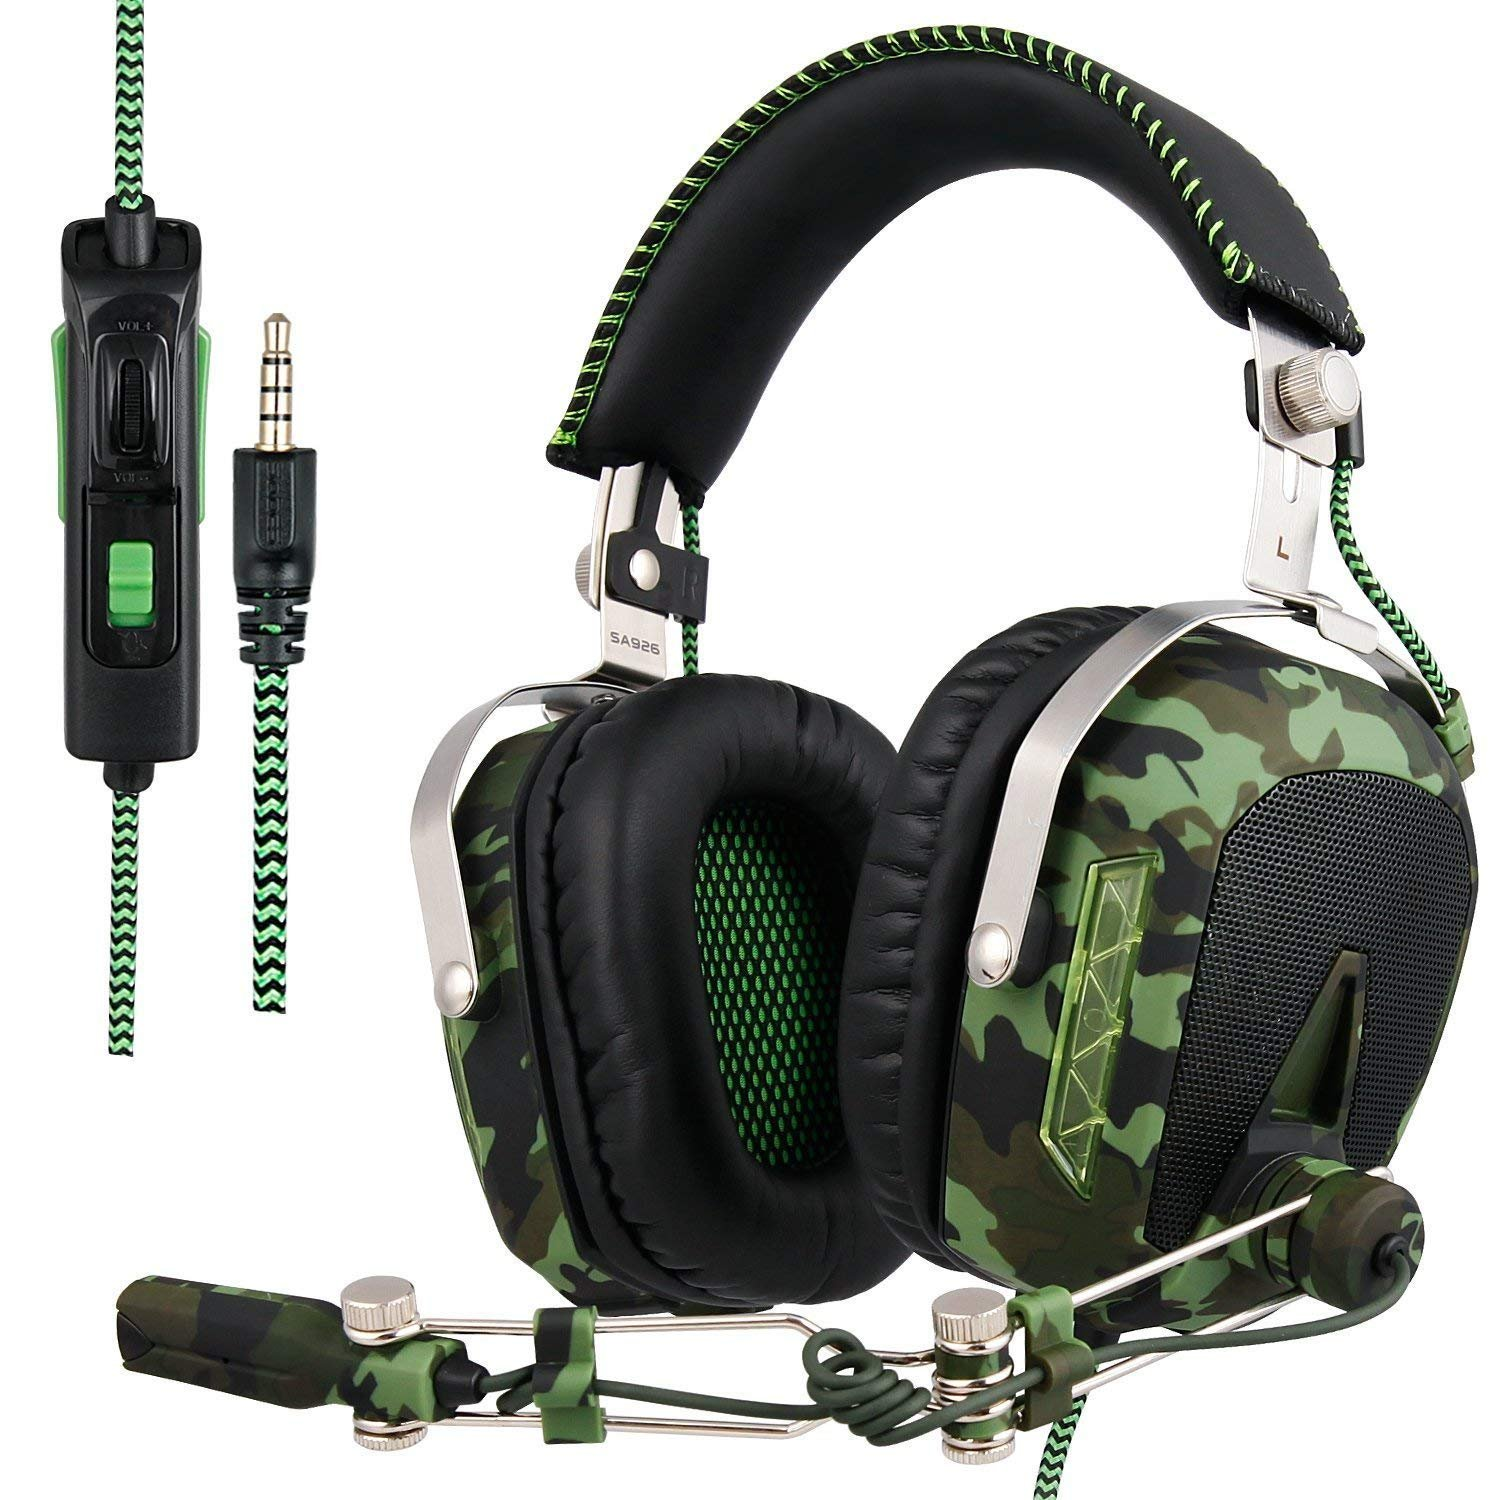 GW SADES SA926T Stereo Gaming Headset for PS4 New Xbox One, Bass Over-Ear Headphones with Mic and Volume Control for Laptop, PC, Mac, iPad, Computer, Smartphones Camouflage